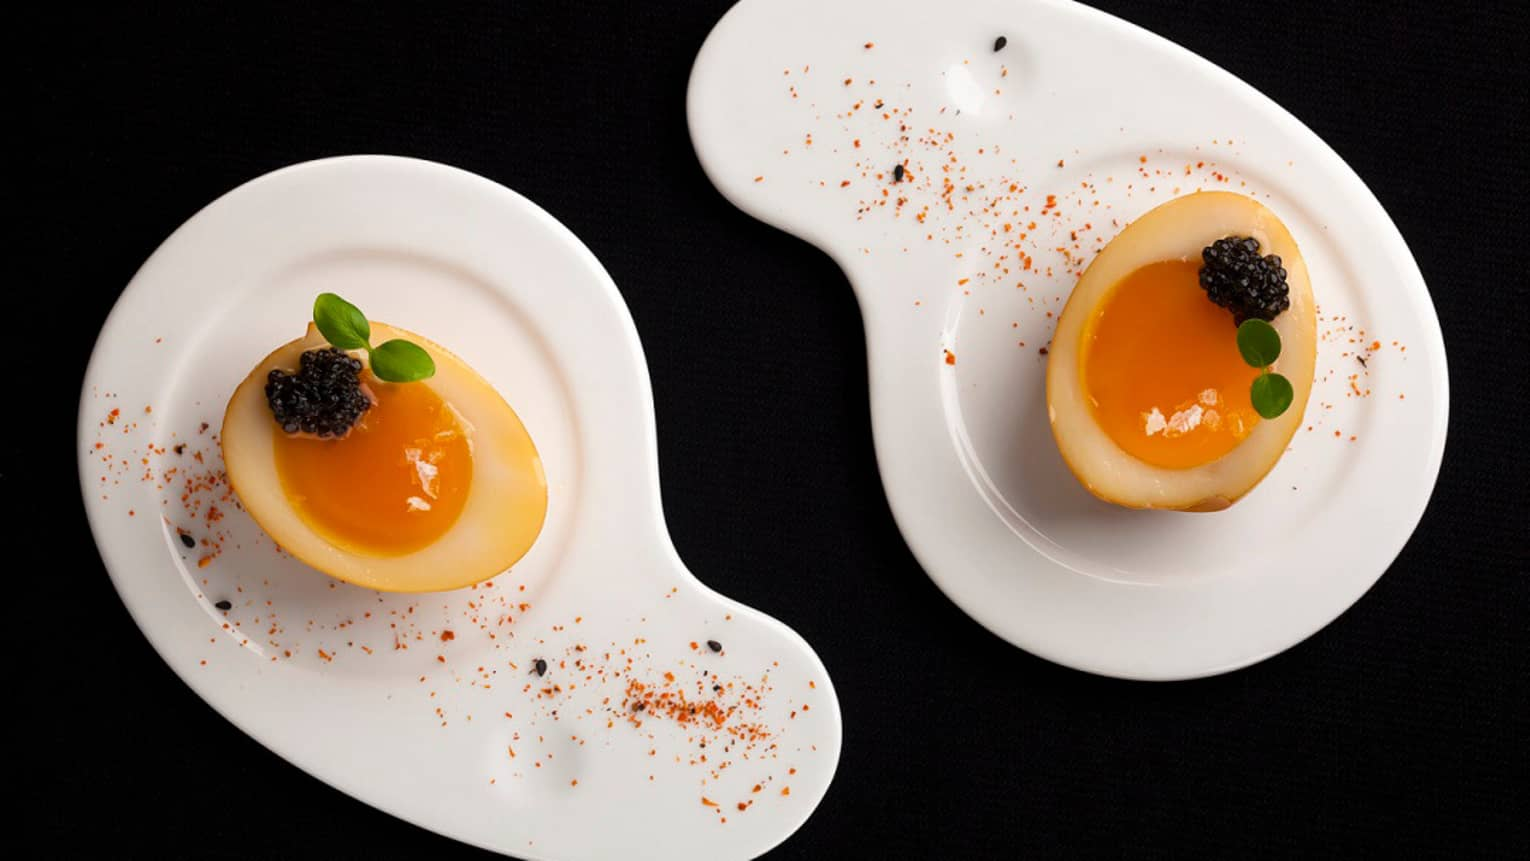 Two tea-smoked eggs with blackberry garnish on curved white plates